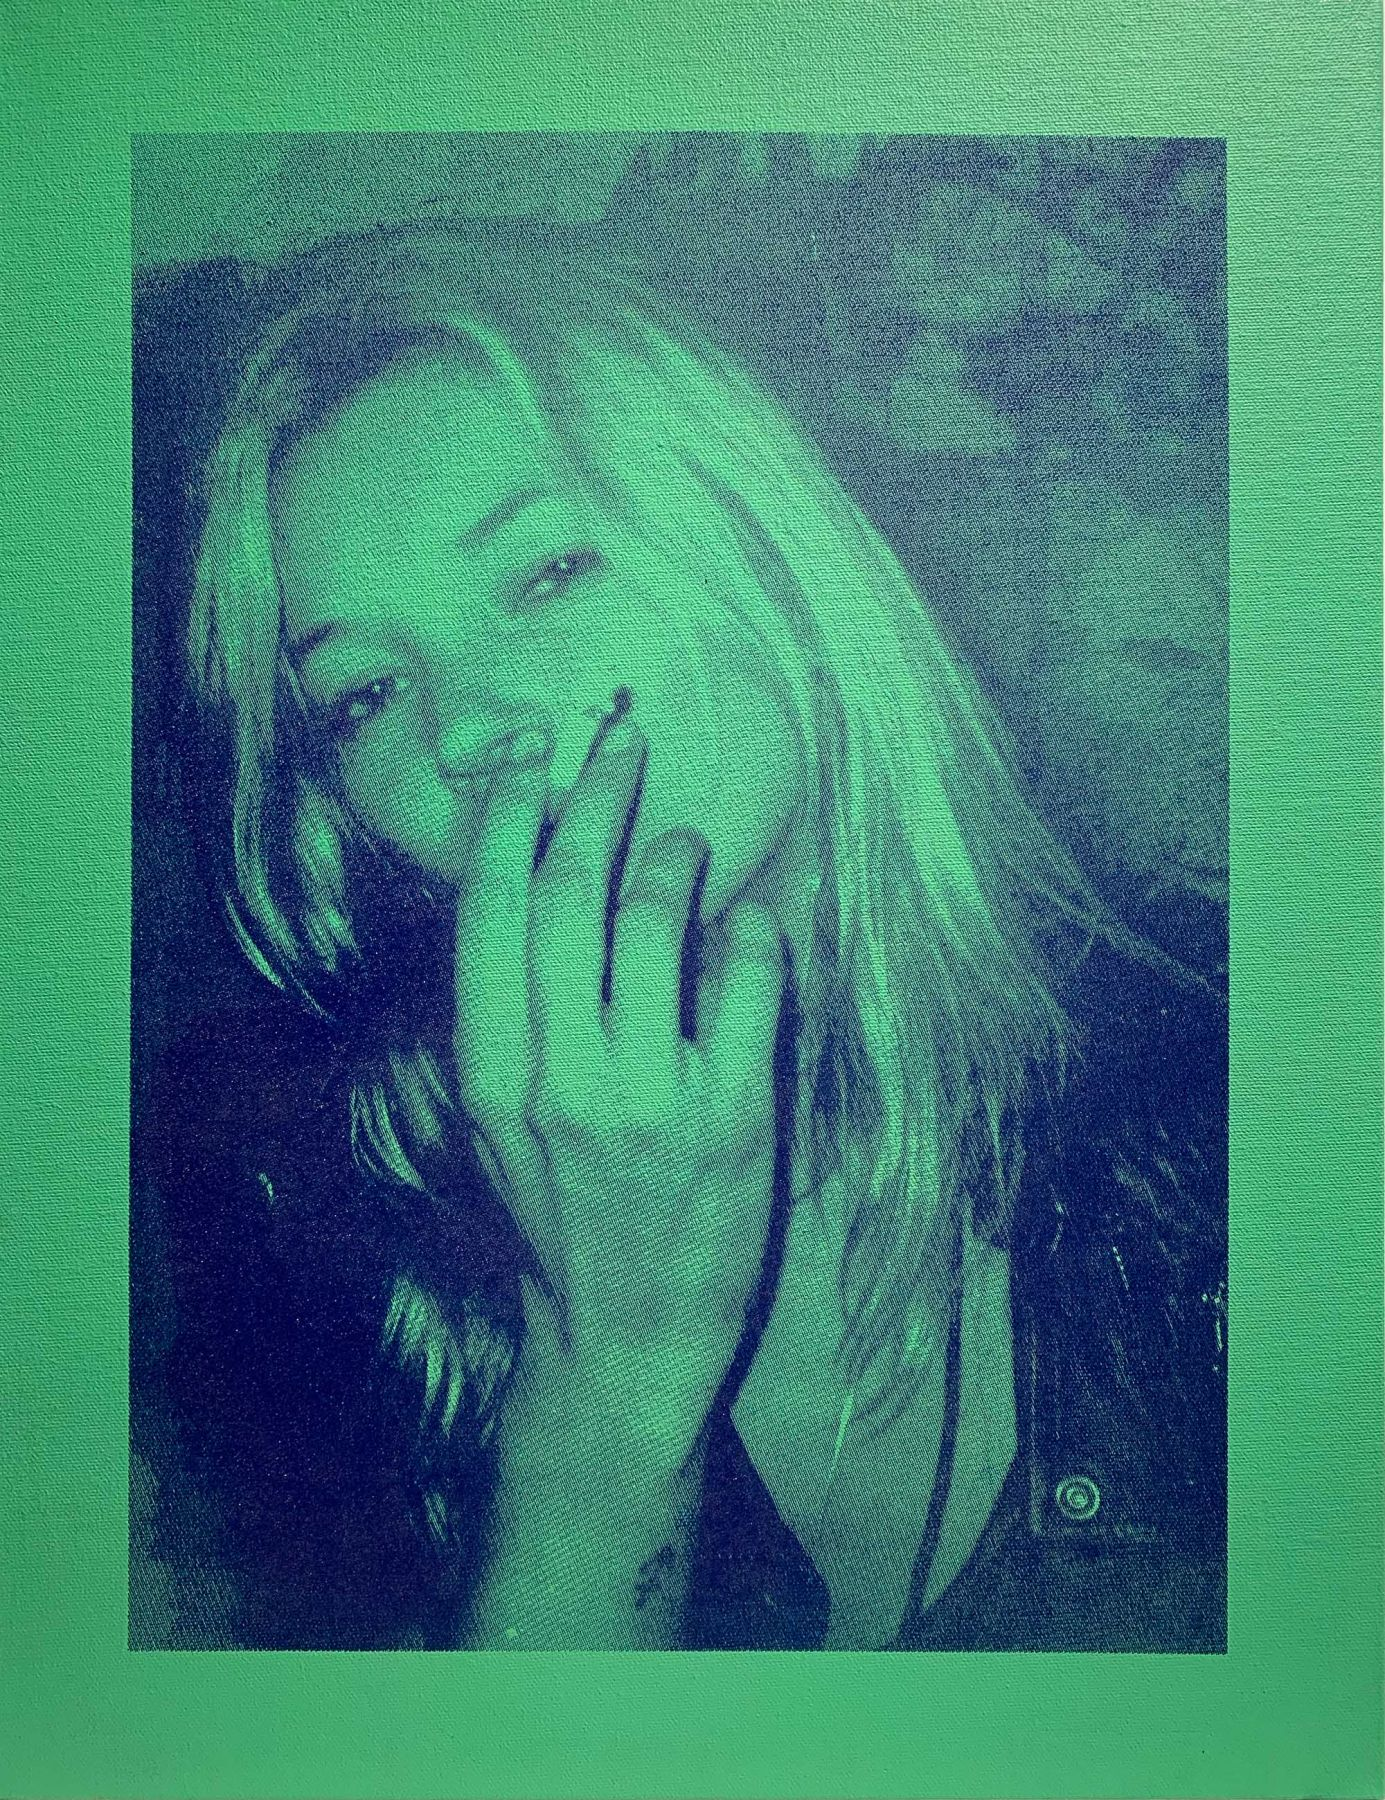 Michael Stiegler  Kate Moss Green, 2019 art from the exhibition on Bowery at Lone Goat Gallery